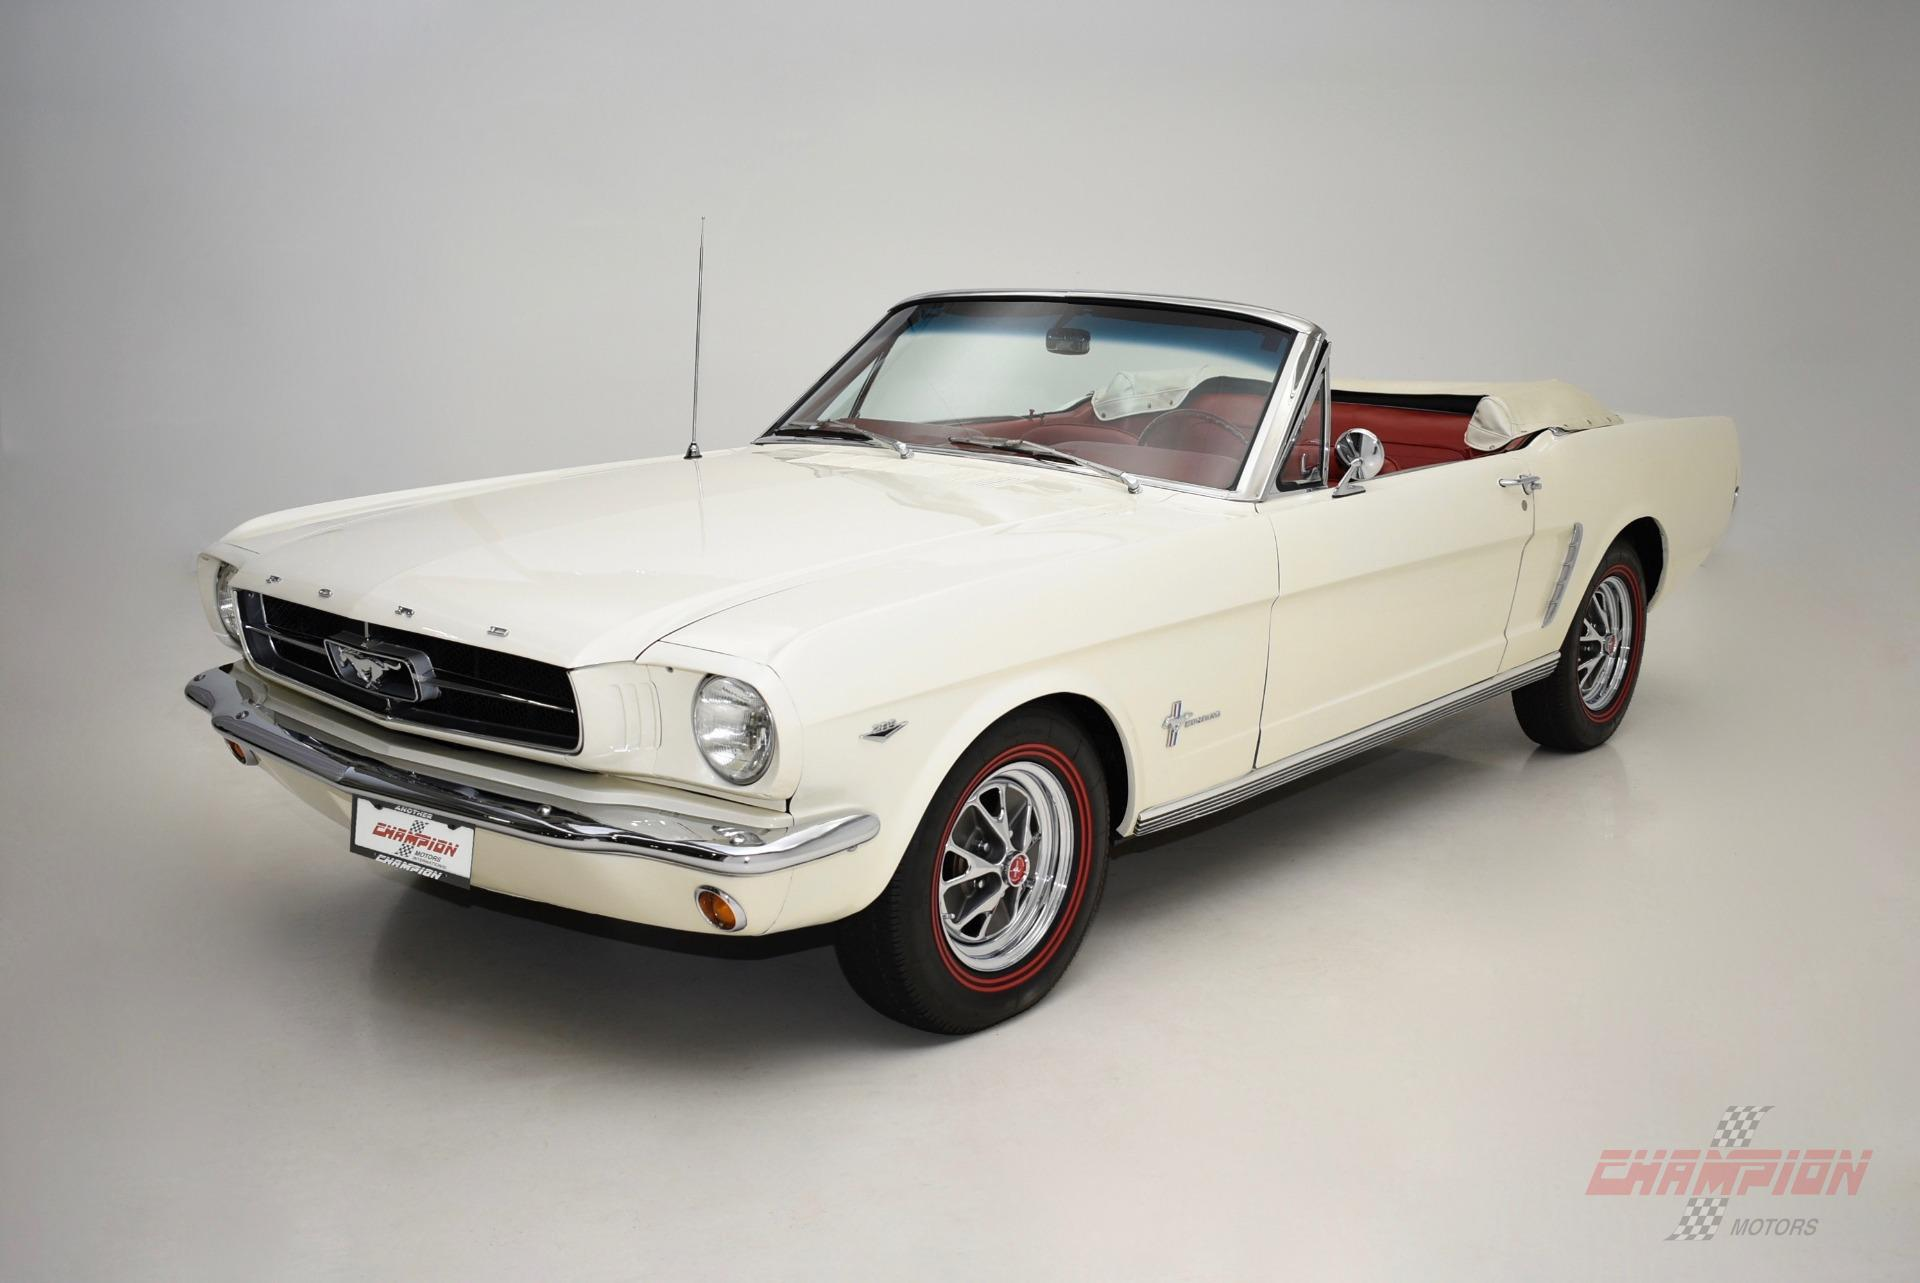 1965 Ford Mustang --: 1965 Ford Mustang  170 Miles White Convertible  Manual